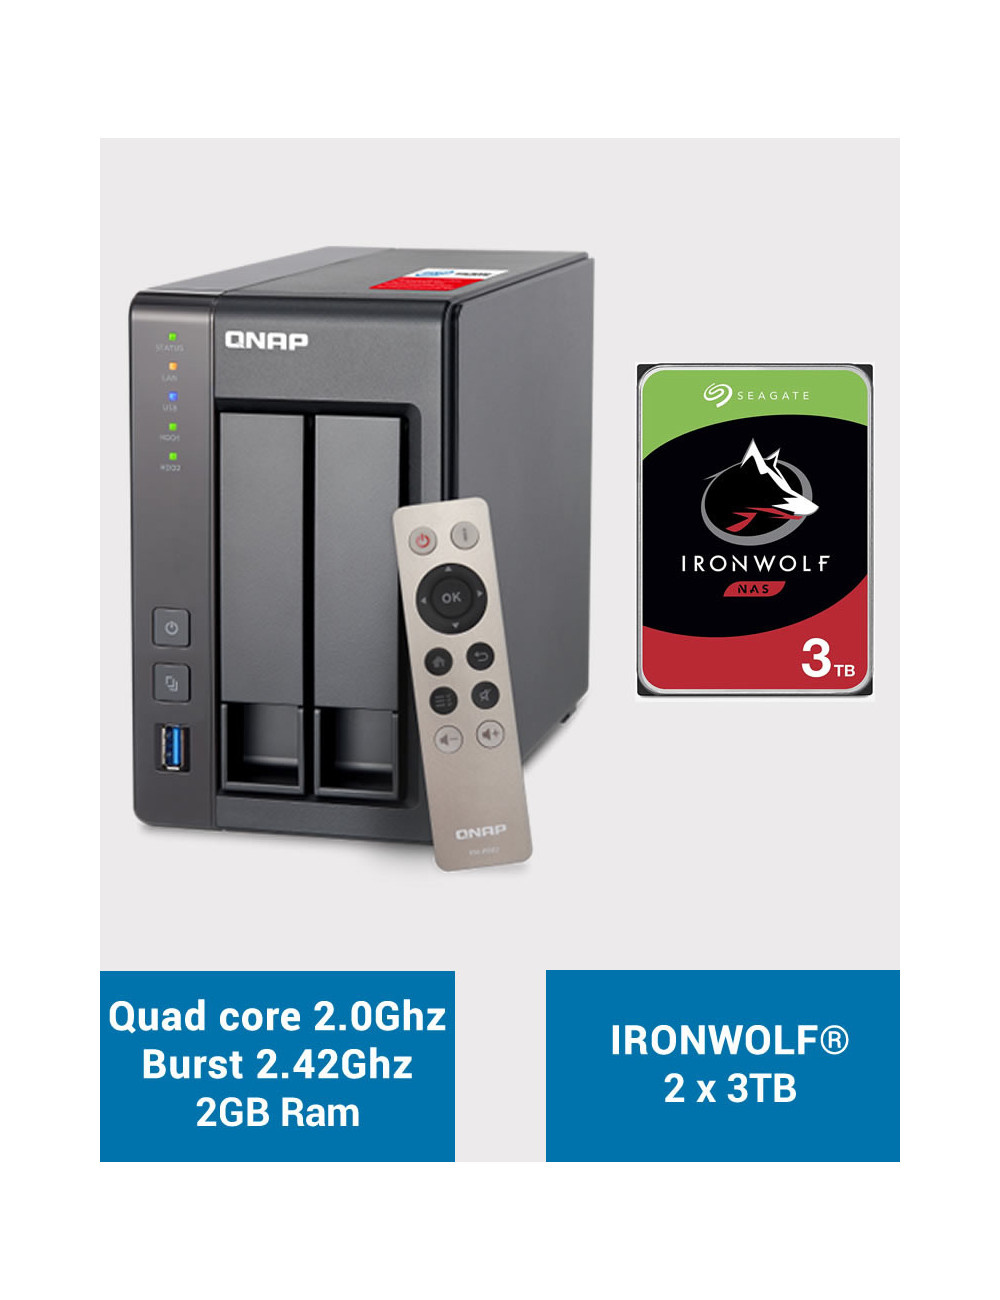 QNAP TS-251+ Serveur NAS IRONWOLF 6 To